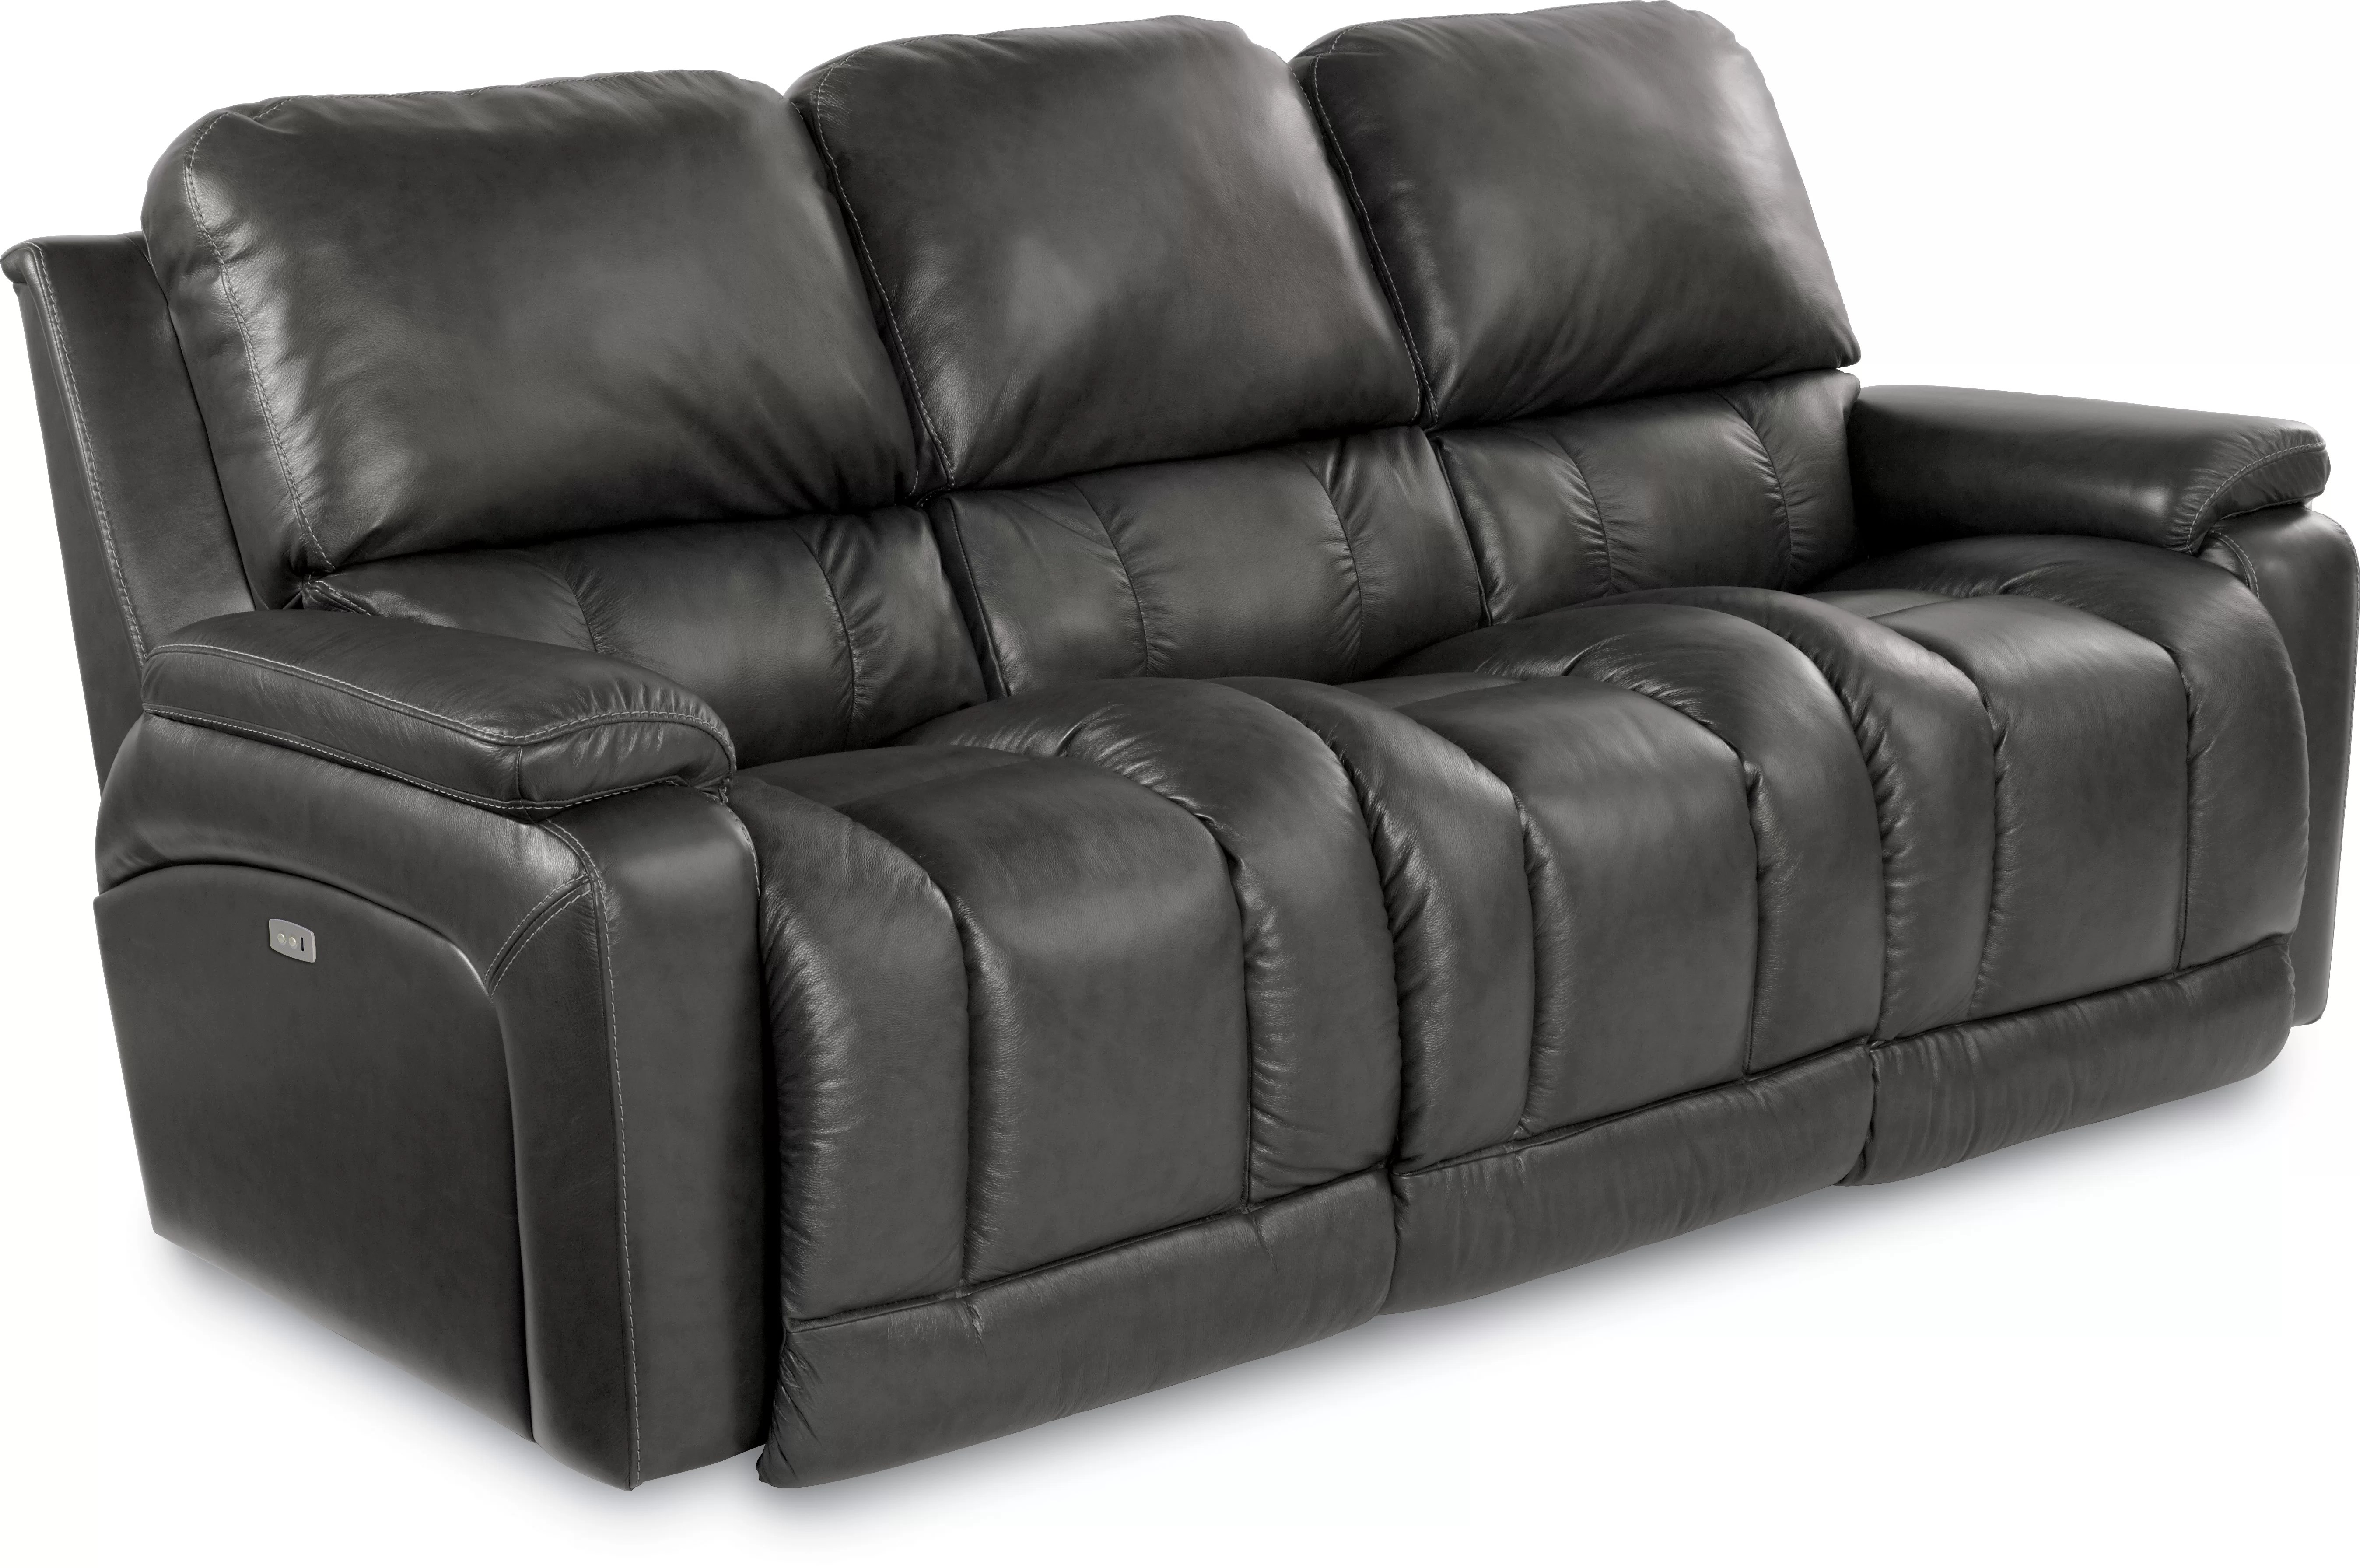 Leather Sofa La Z Boy Greyson Leather Reclining Sofa